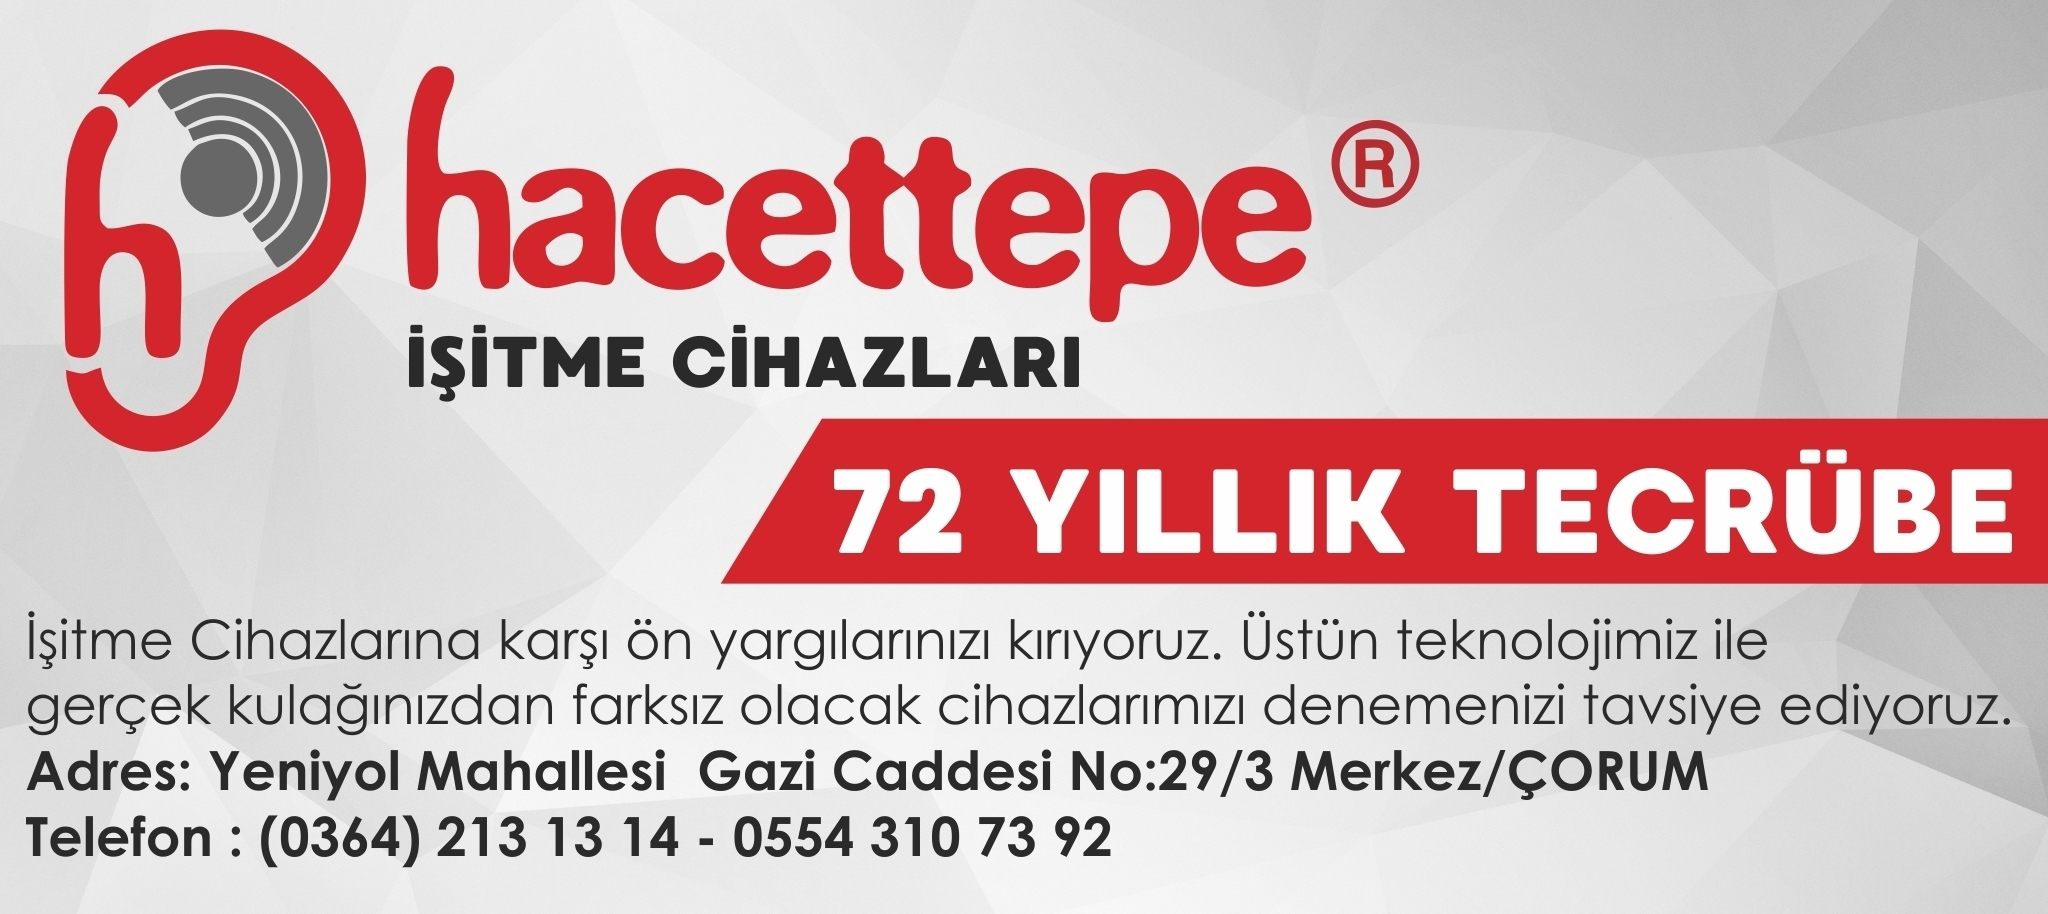 hacettepe-isitme